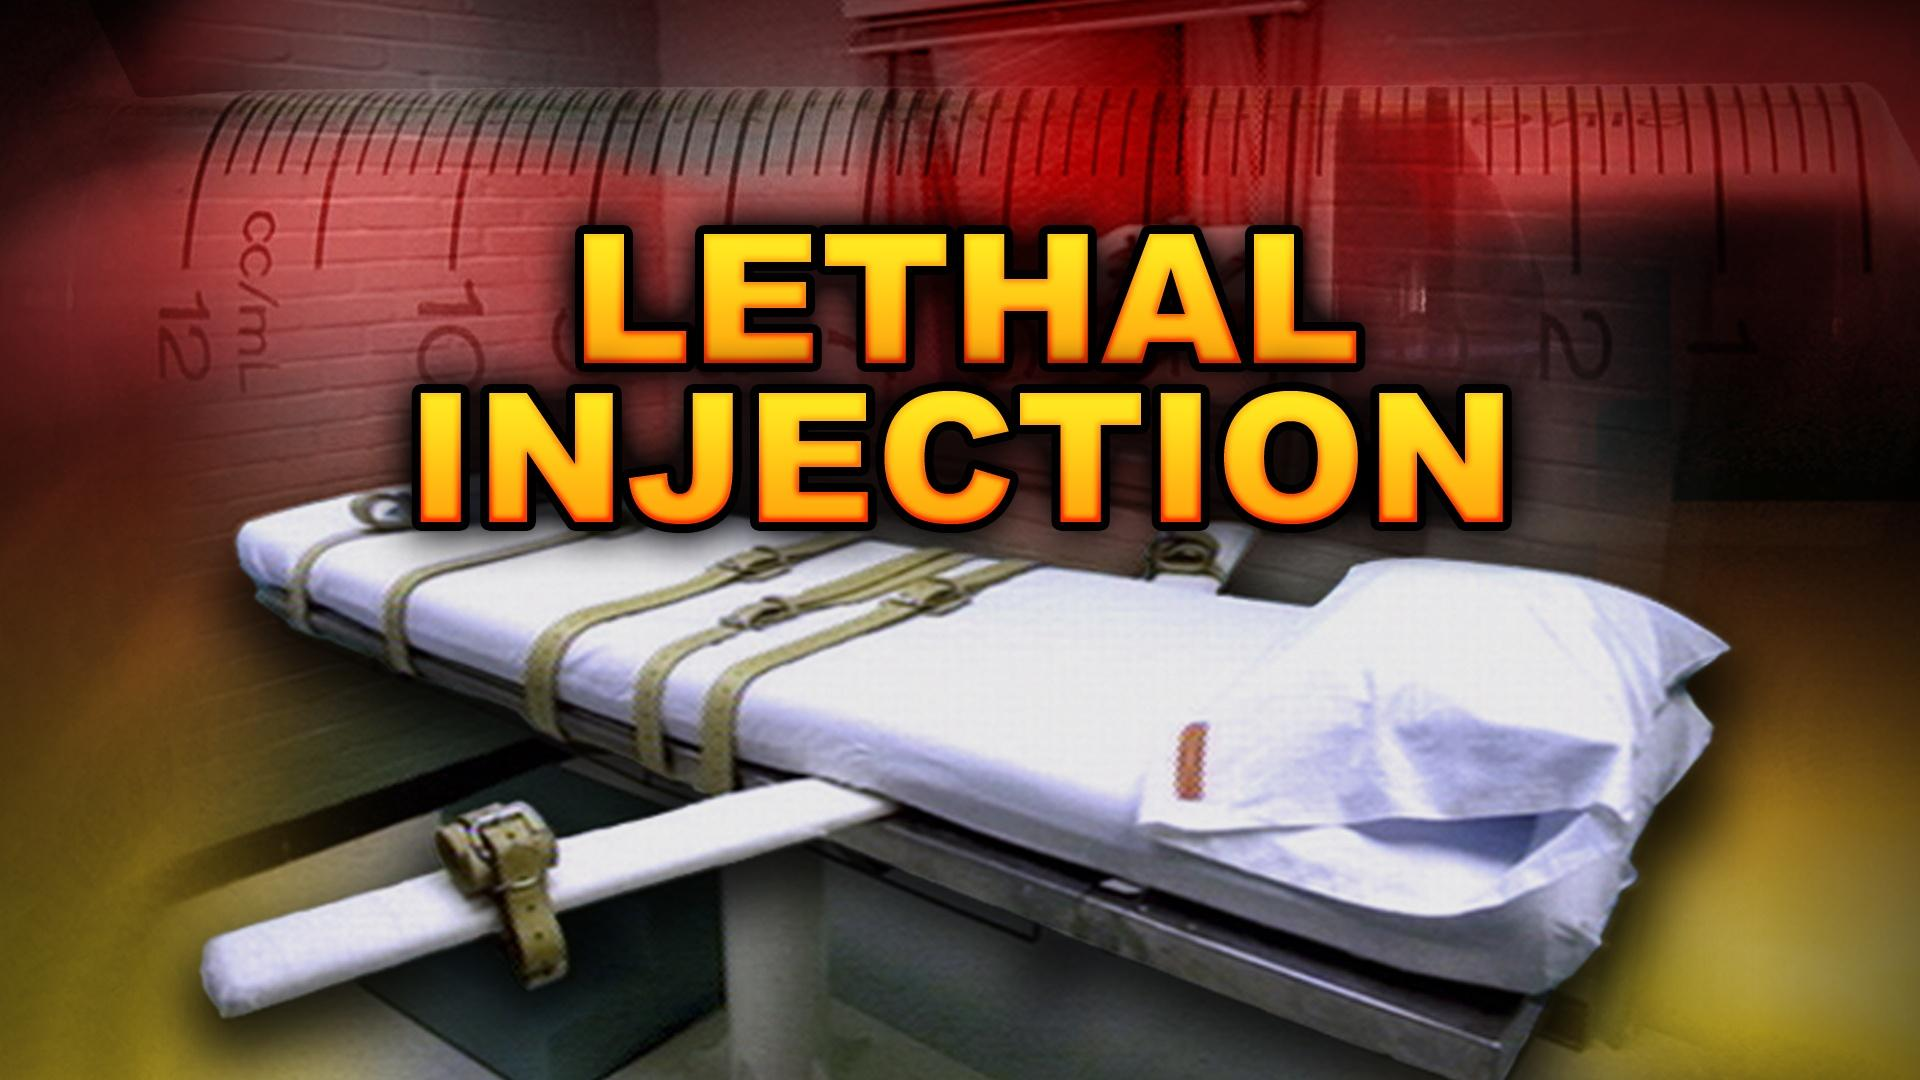 """term papers lethal injection According to the paper, a minute into the lethal injection procedure, after the drug midazolam was injected into him, the prisoner lifted up his head, """"looked around, moved his toes and legs."""